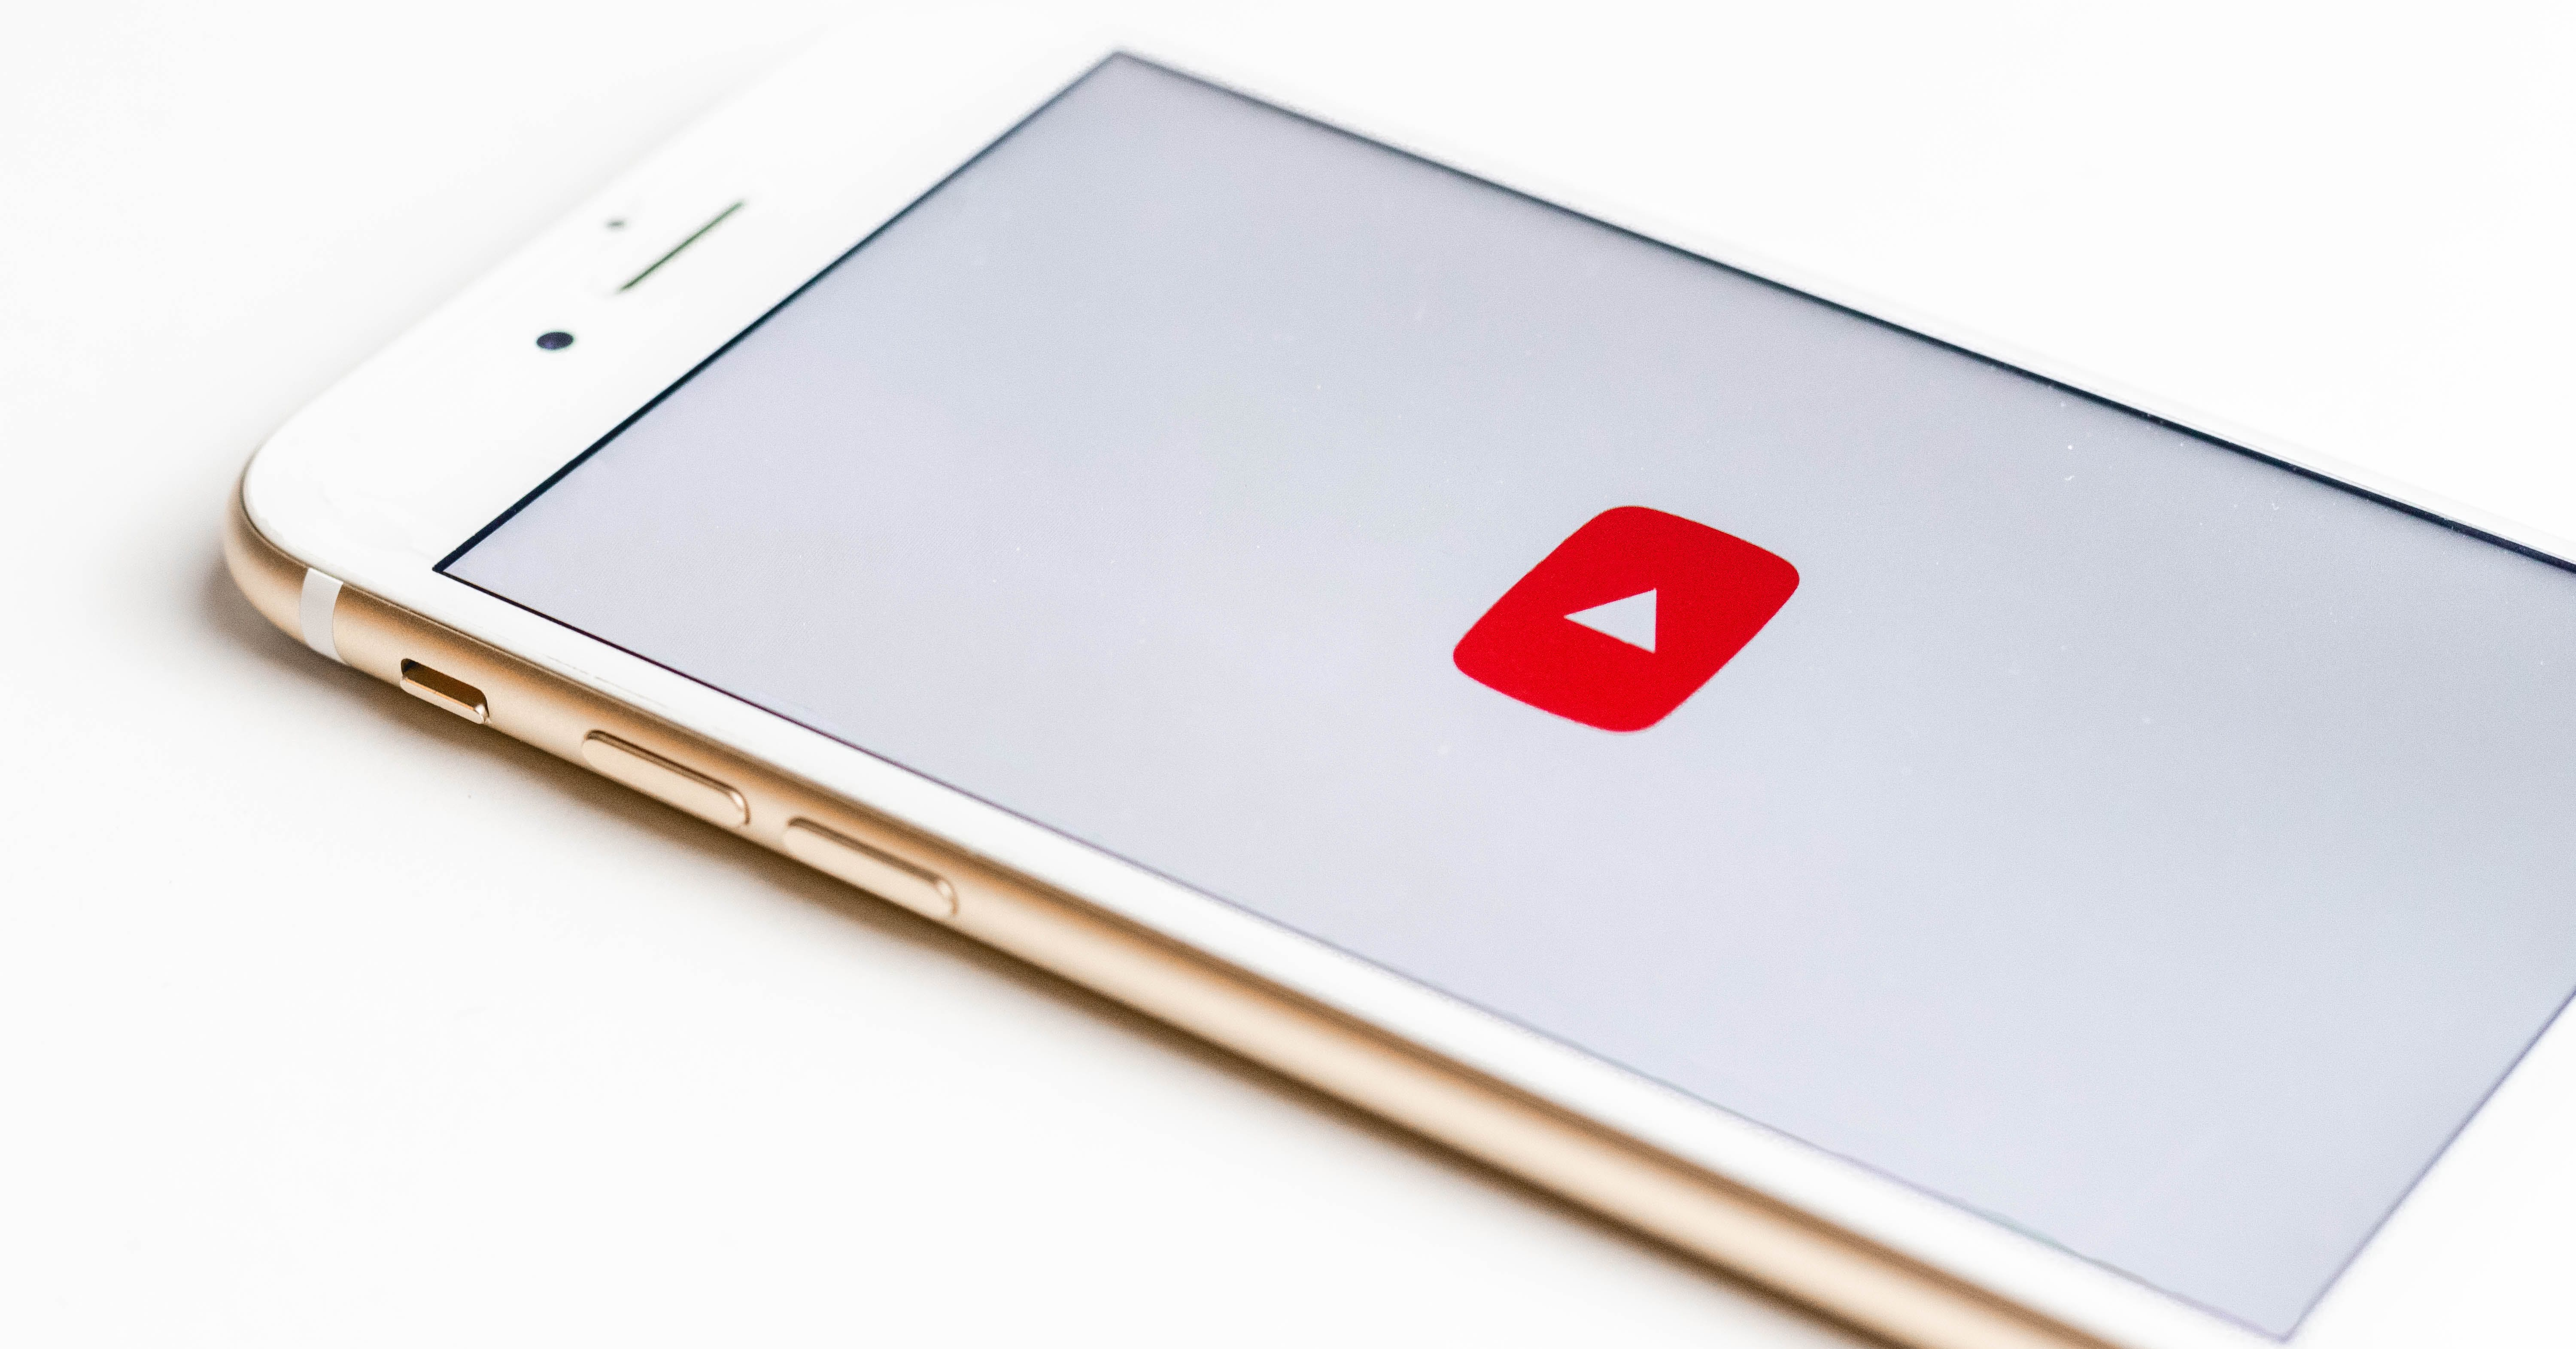 Rituals for hypergrowth: An inside look at how YouTube scaled